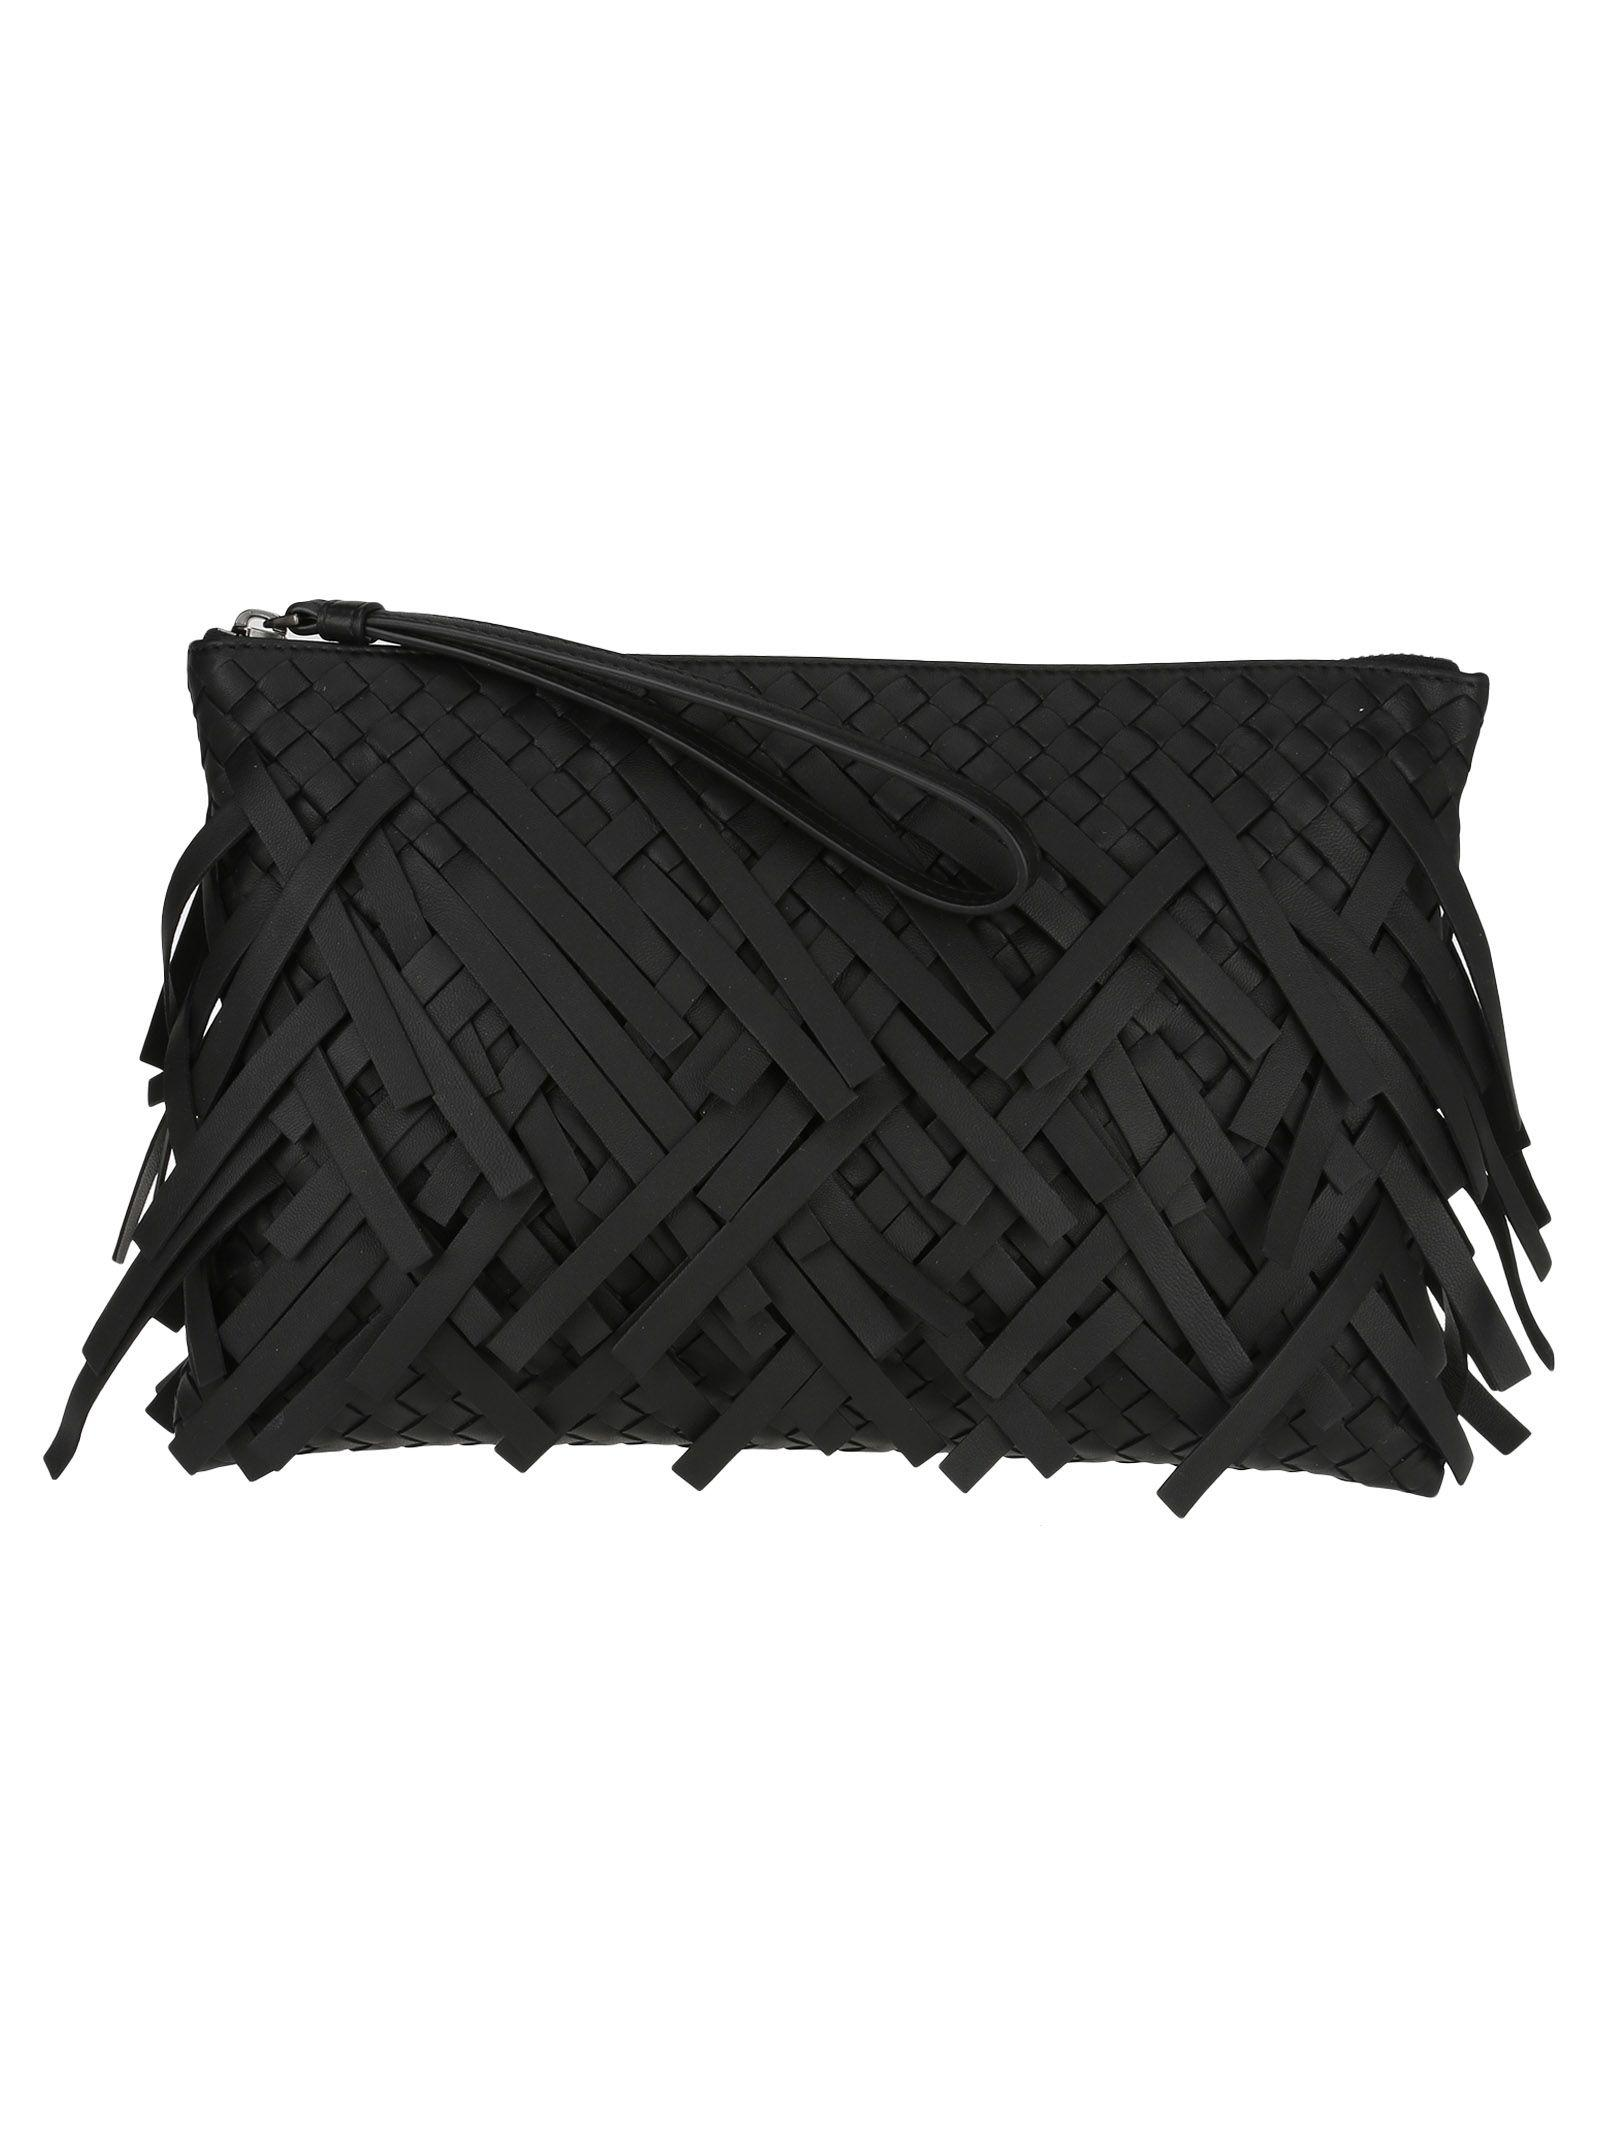 Bottega Veneta Pouch Fringe In Black